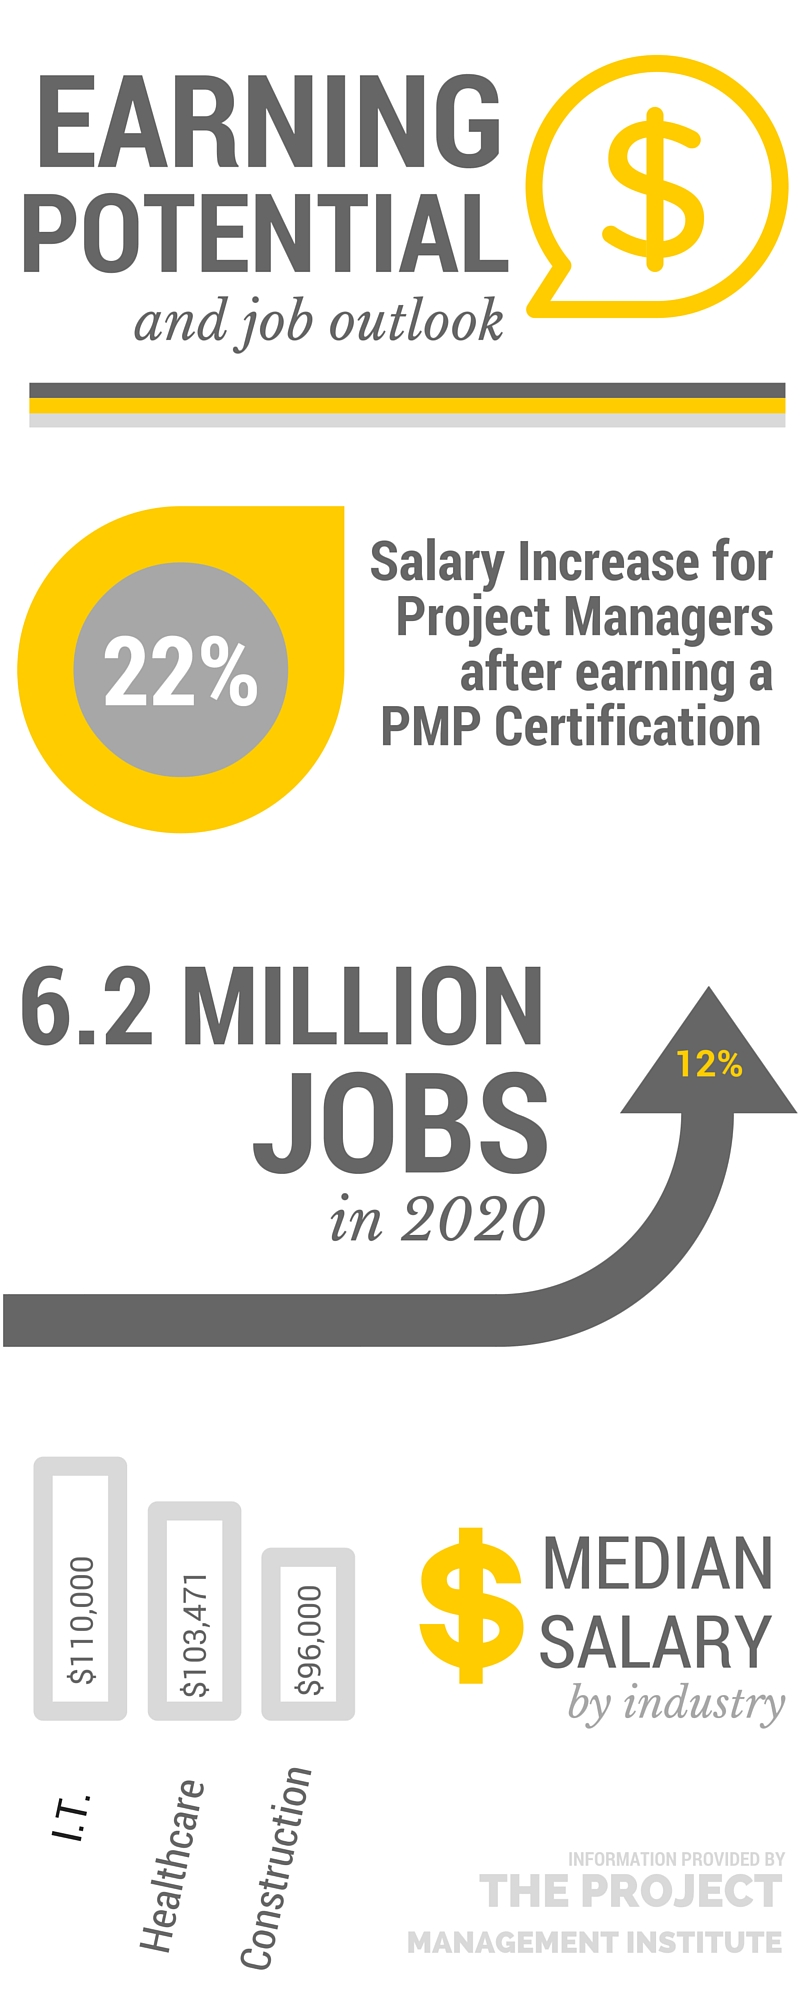 Earning Potential and Career Outlook for PMPs